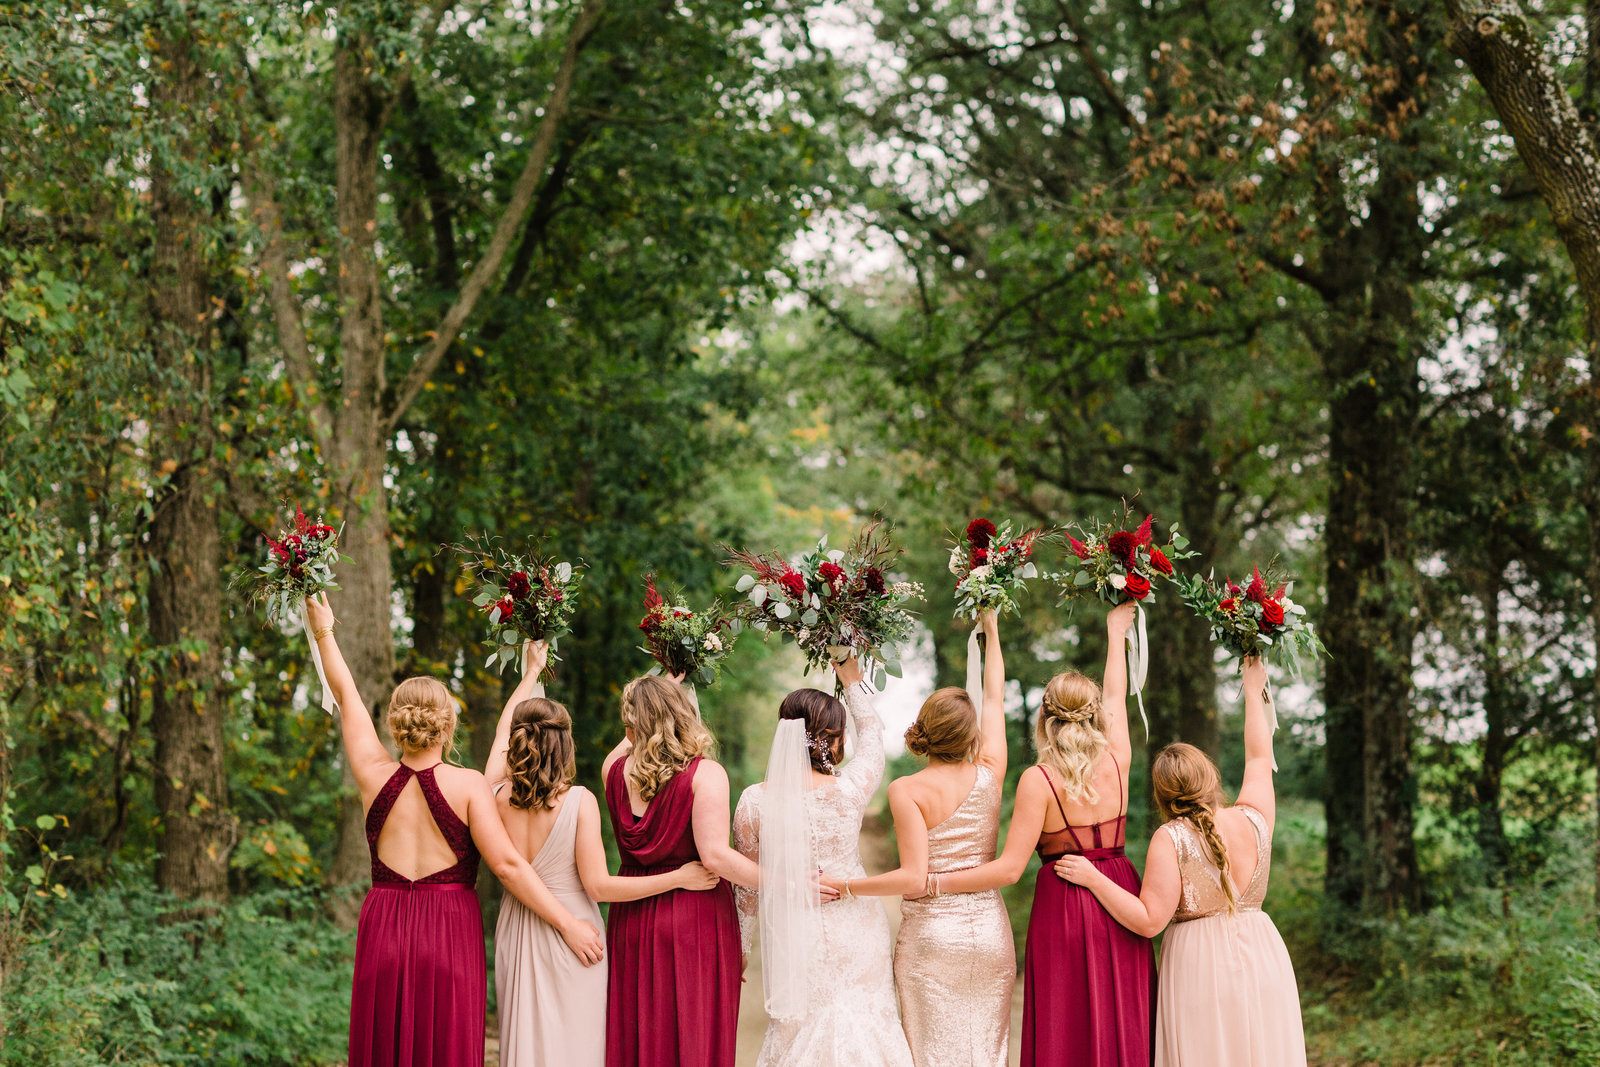 Bridesmaid pose with flowers in the air for this Rustic yet elegant wedding at Three Barn Farm with pops of burgundy and navy by Jackelynn Noel Photography